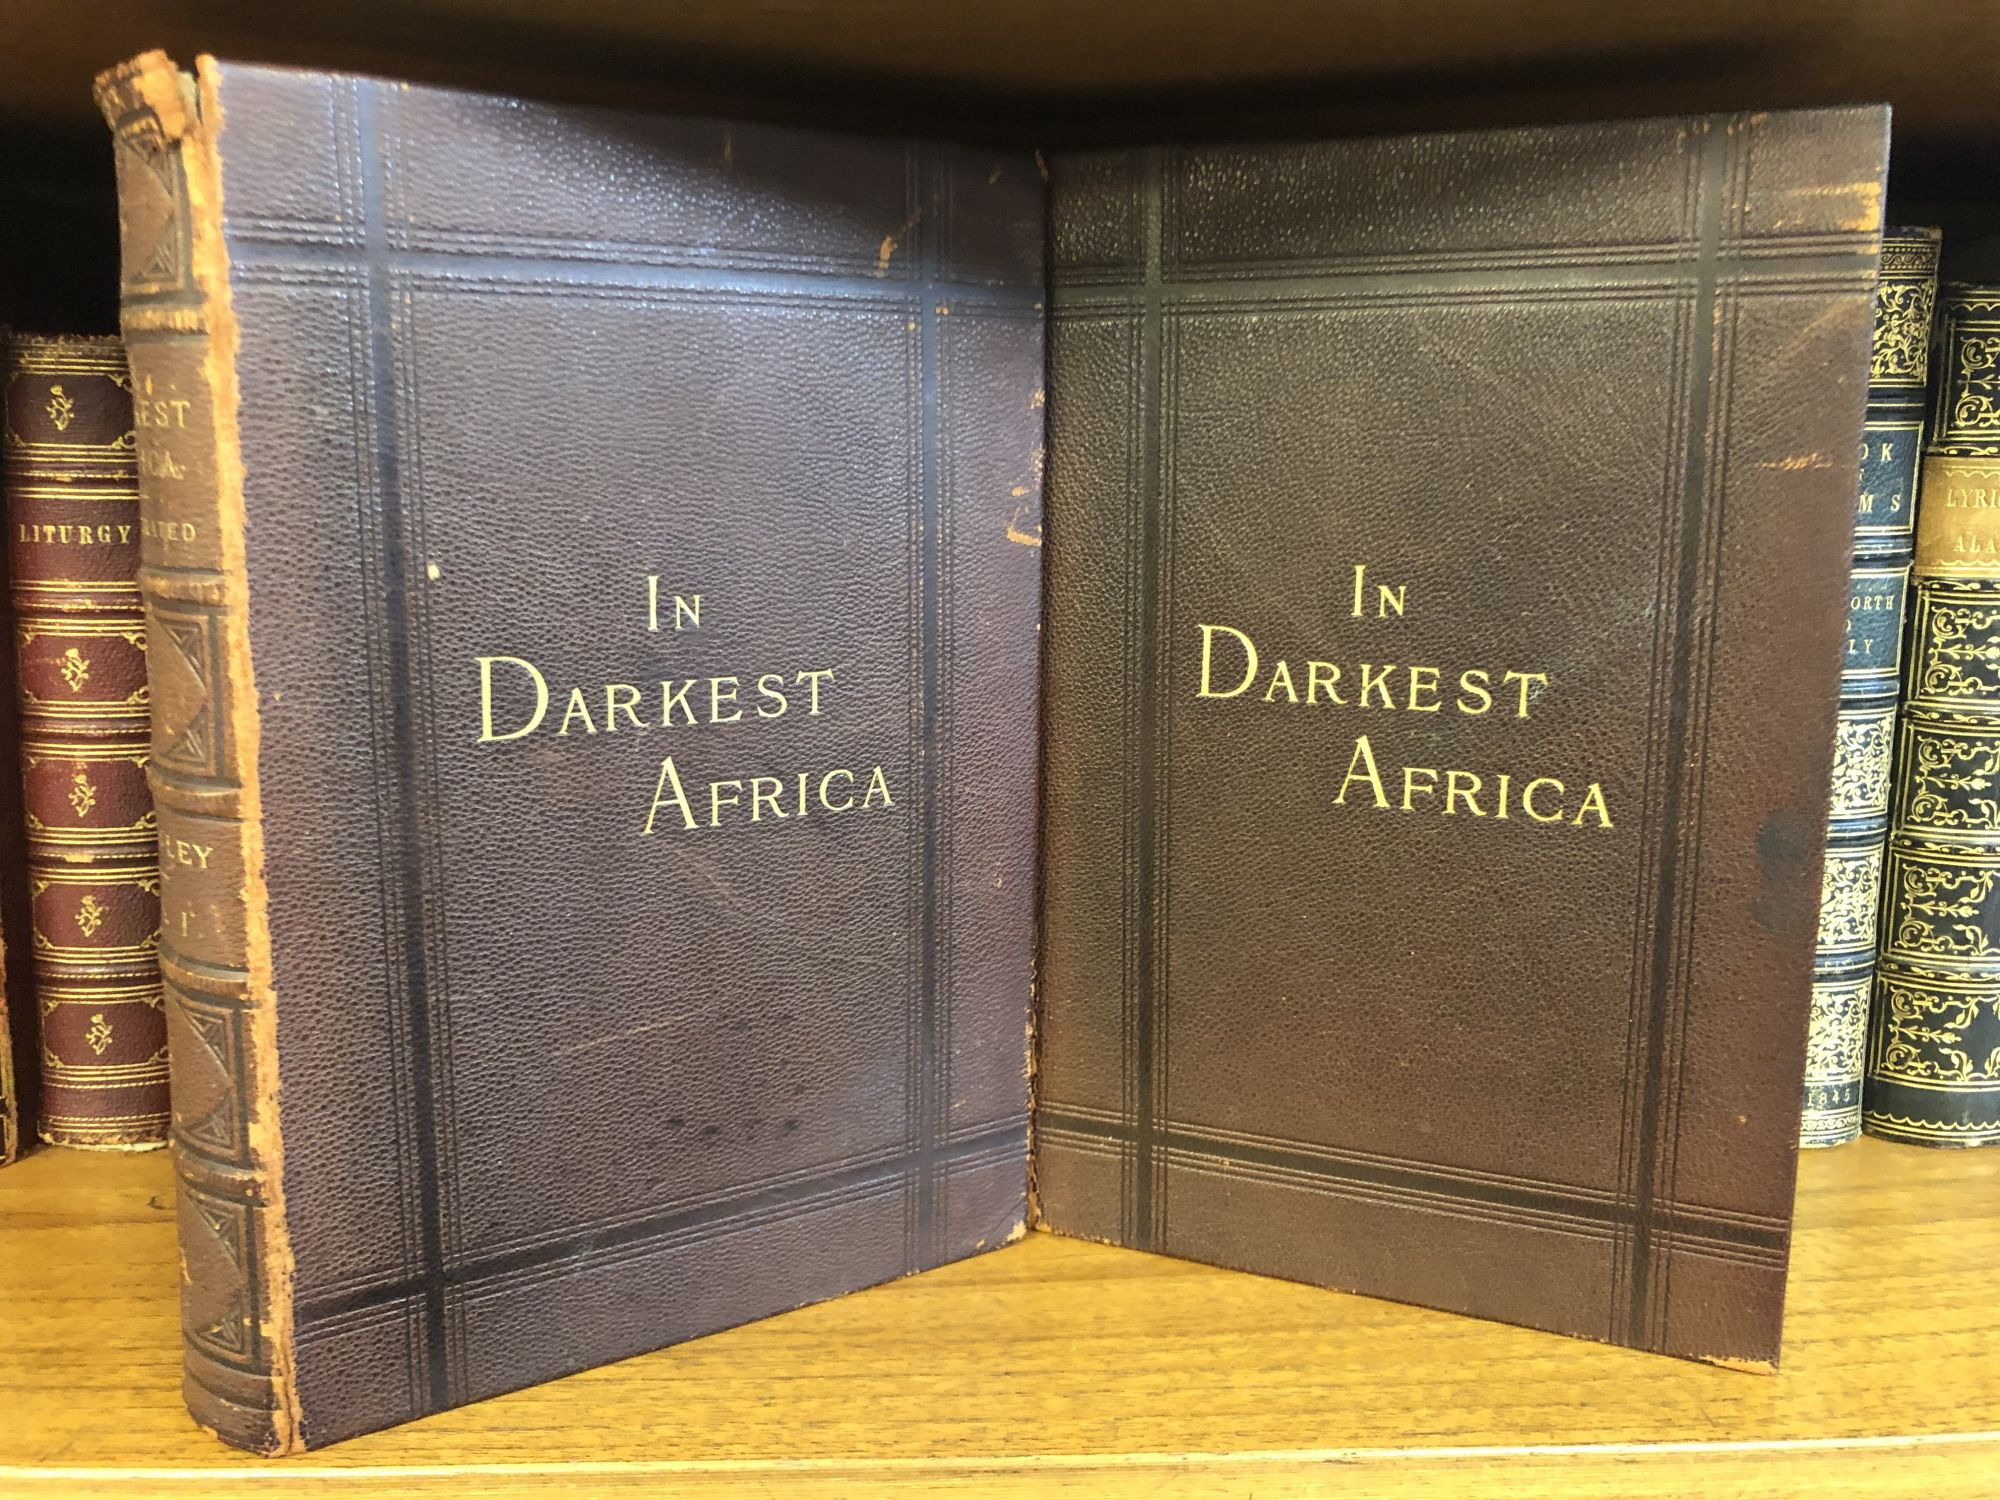 IN DARKEST AFRICA: OR THE QUEST, RESCUE AND RETREAT OF EMIN GOVERNOR OF EQUATORIA [TWO VOLUMES]. Henry M. Stanley.